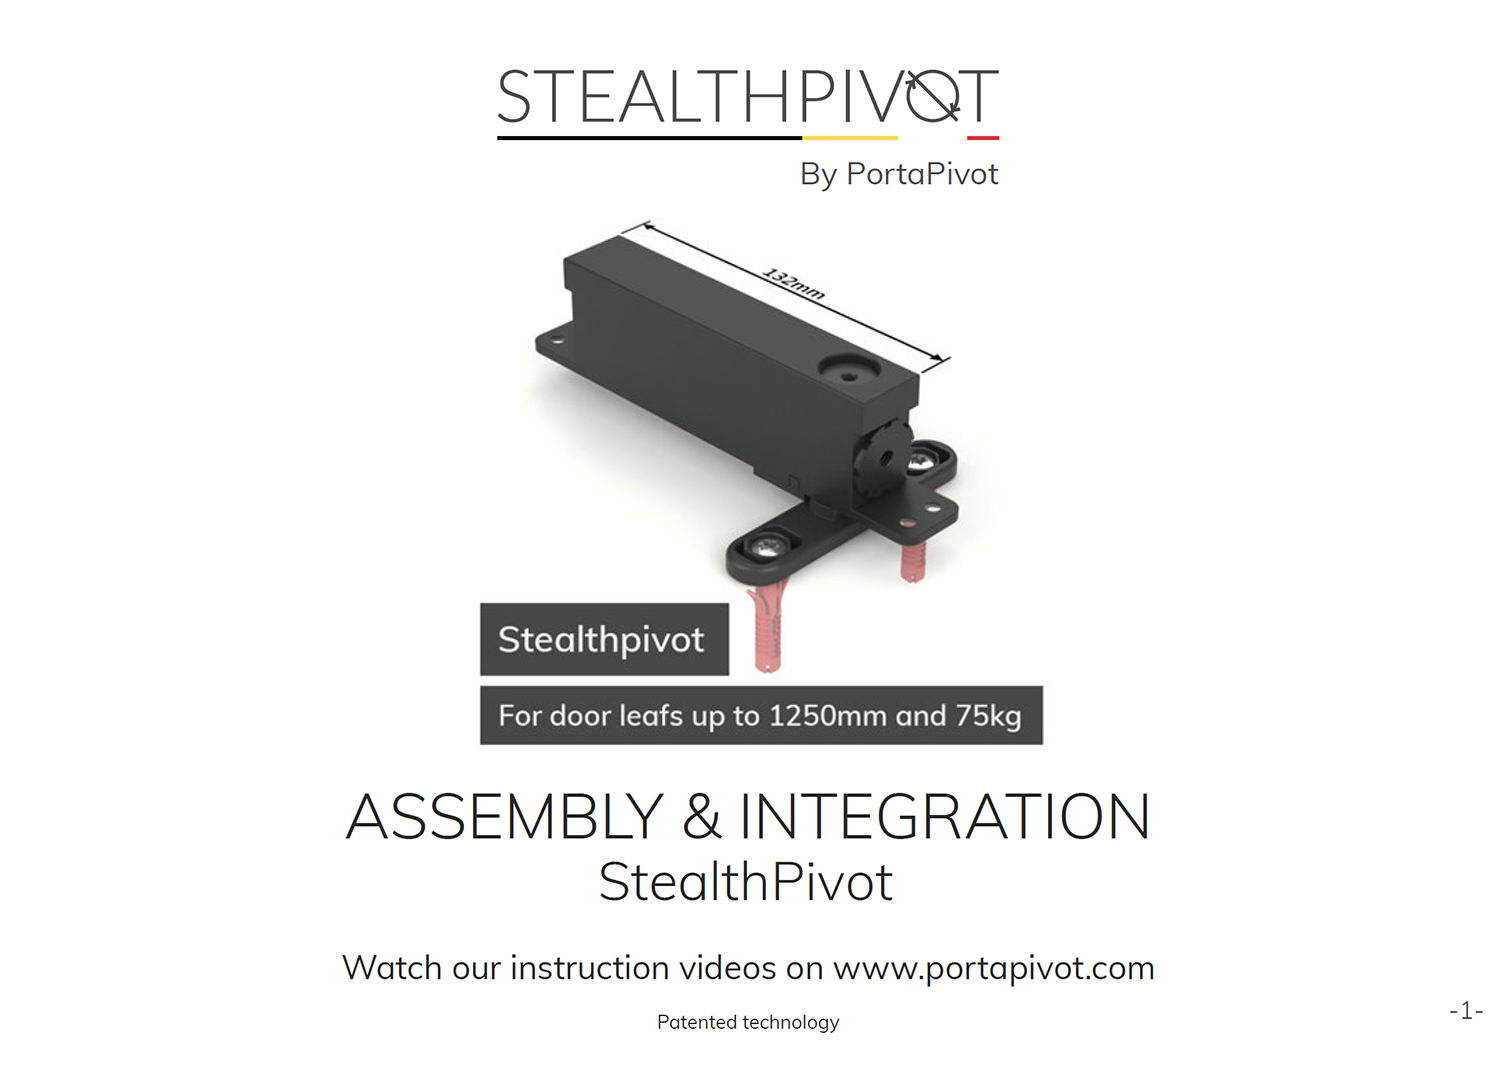 Stealth Pivot NL assembly and integration manual